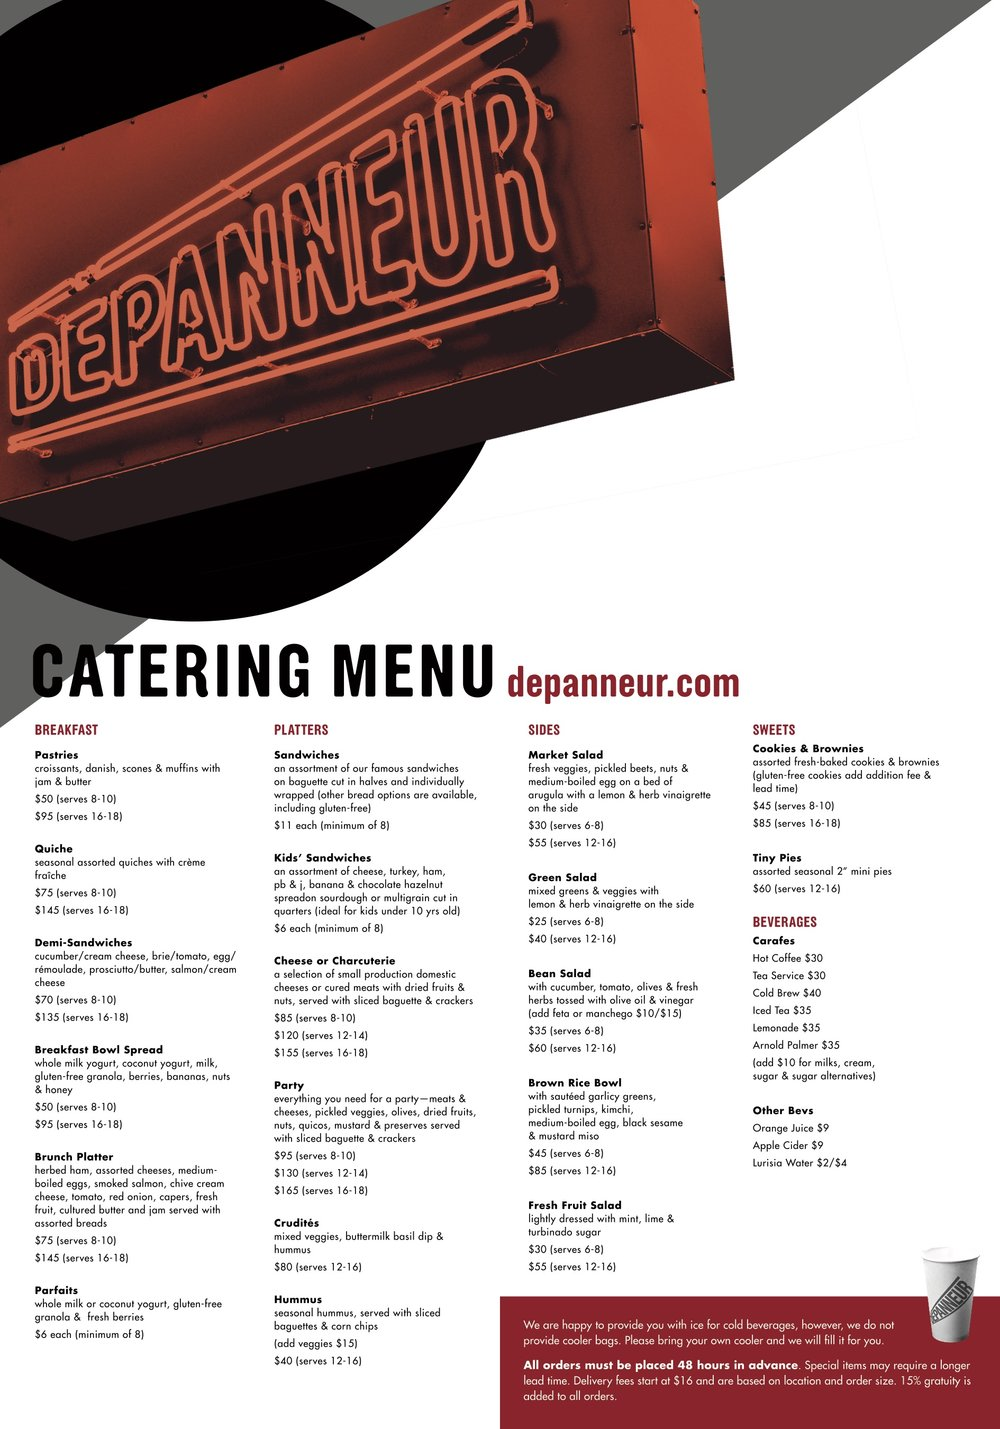 Dépanneur fold out menu (dragged) copy.jpg